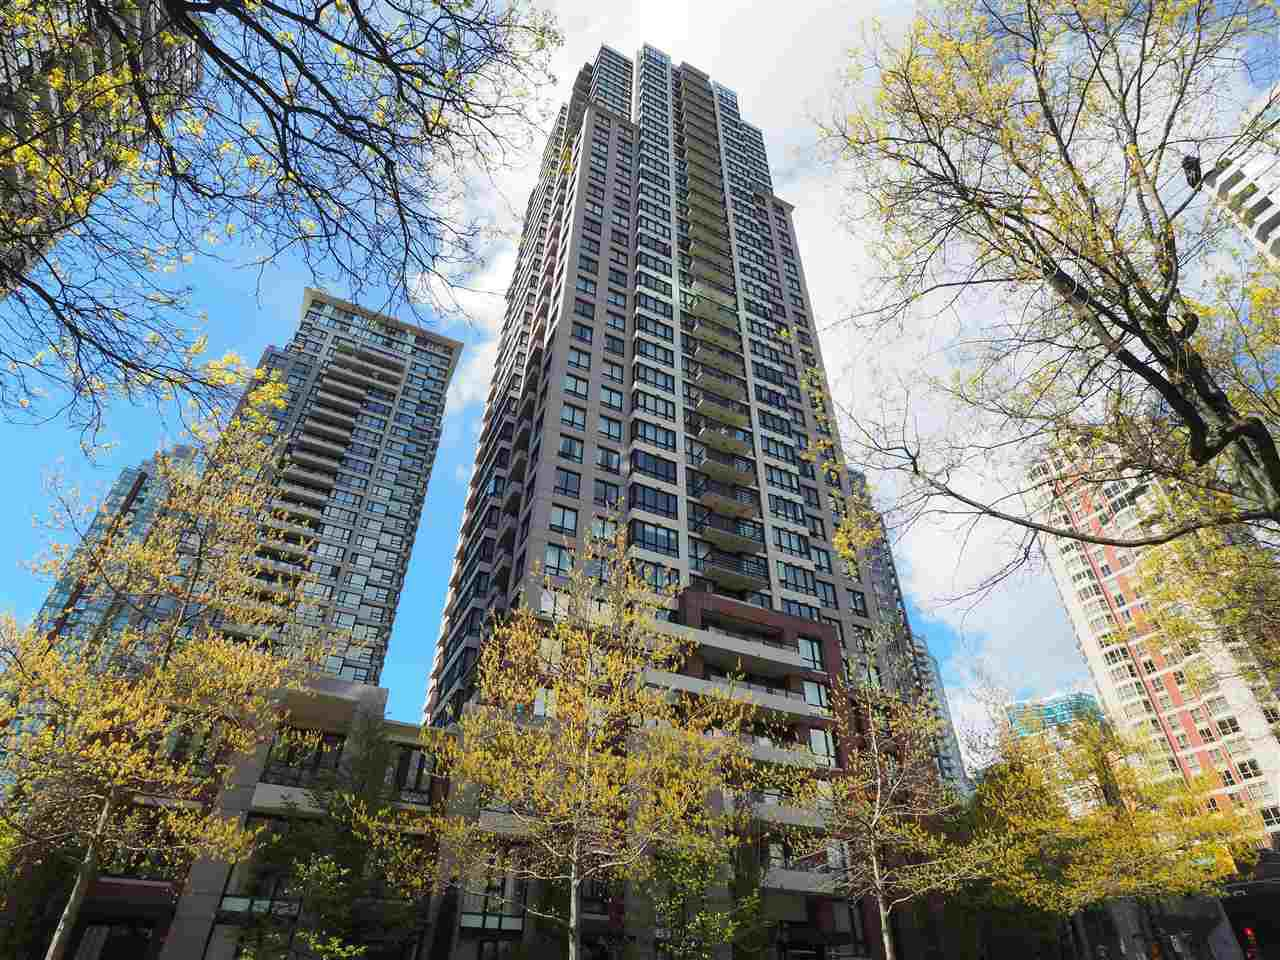 """Main Photo: 2608 909 MAINLAND Street in Vancouver: Yaletown Condo for sale in """"Yaletown Park 2"""" (Vancouver West)  : MLS®# R2365237"""